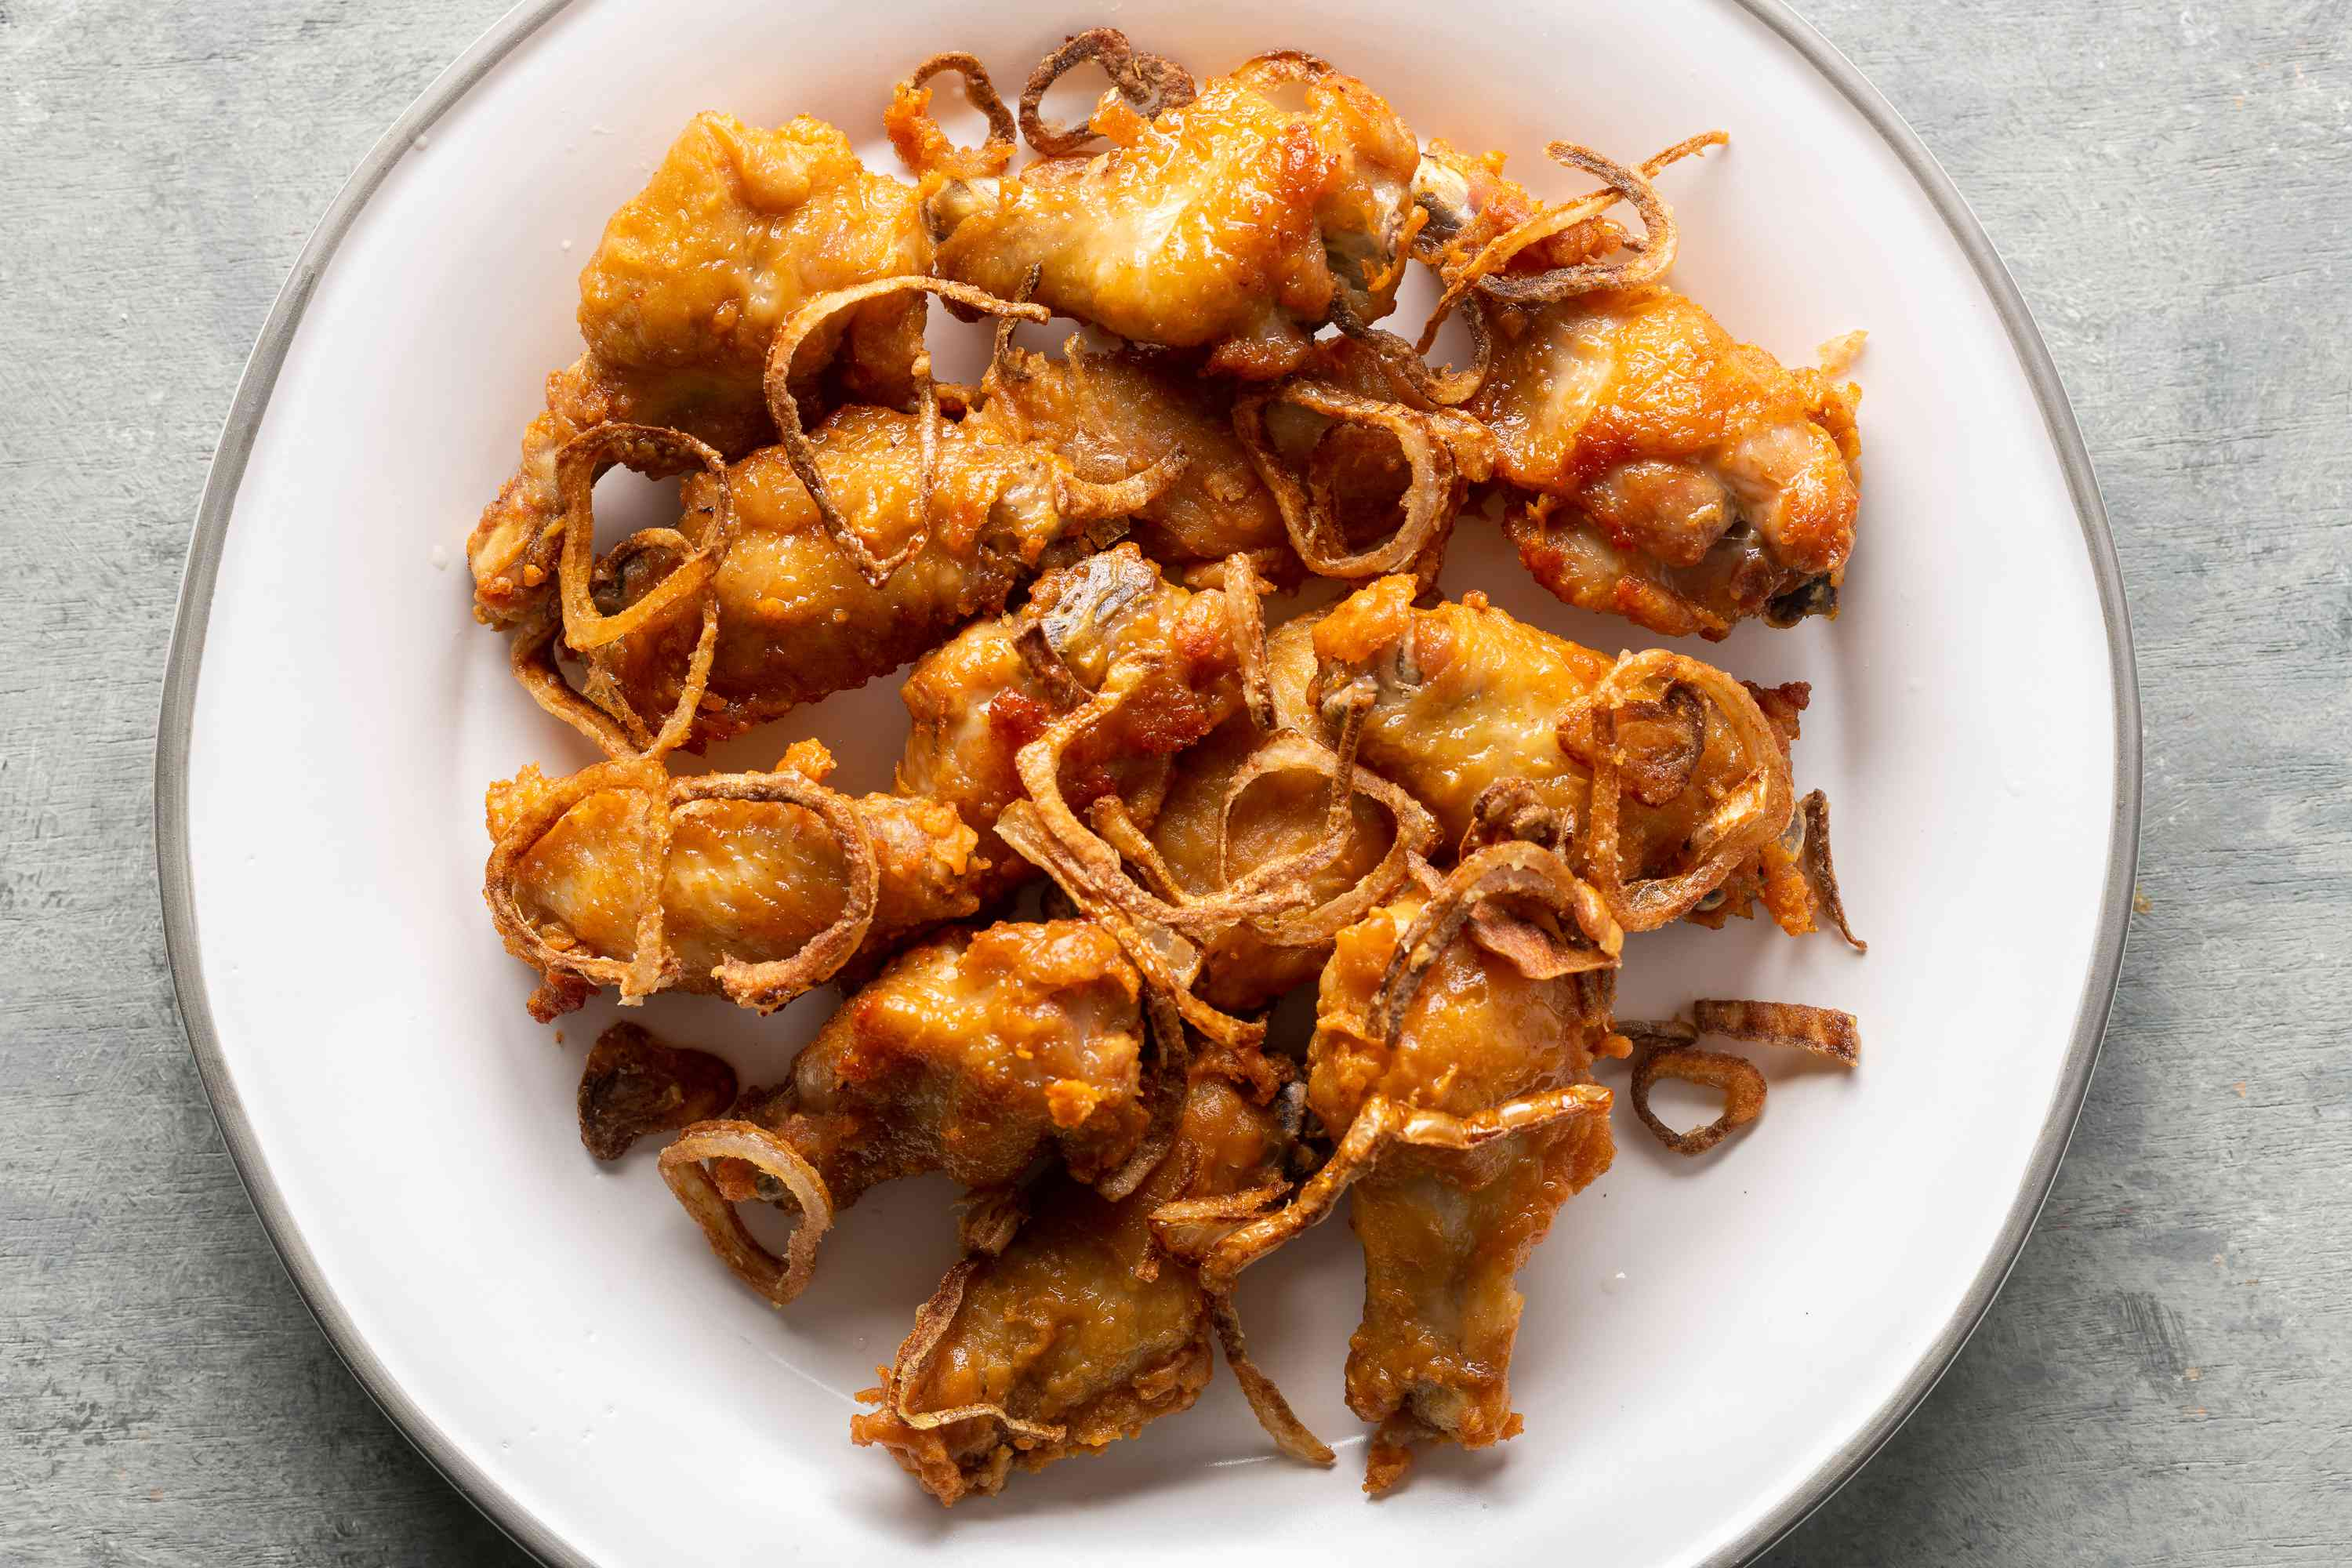 Thai fried chicken wings and fried shallots